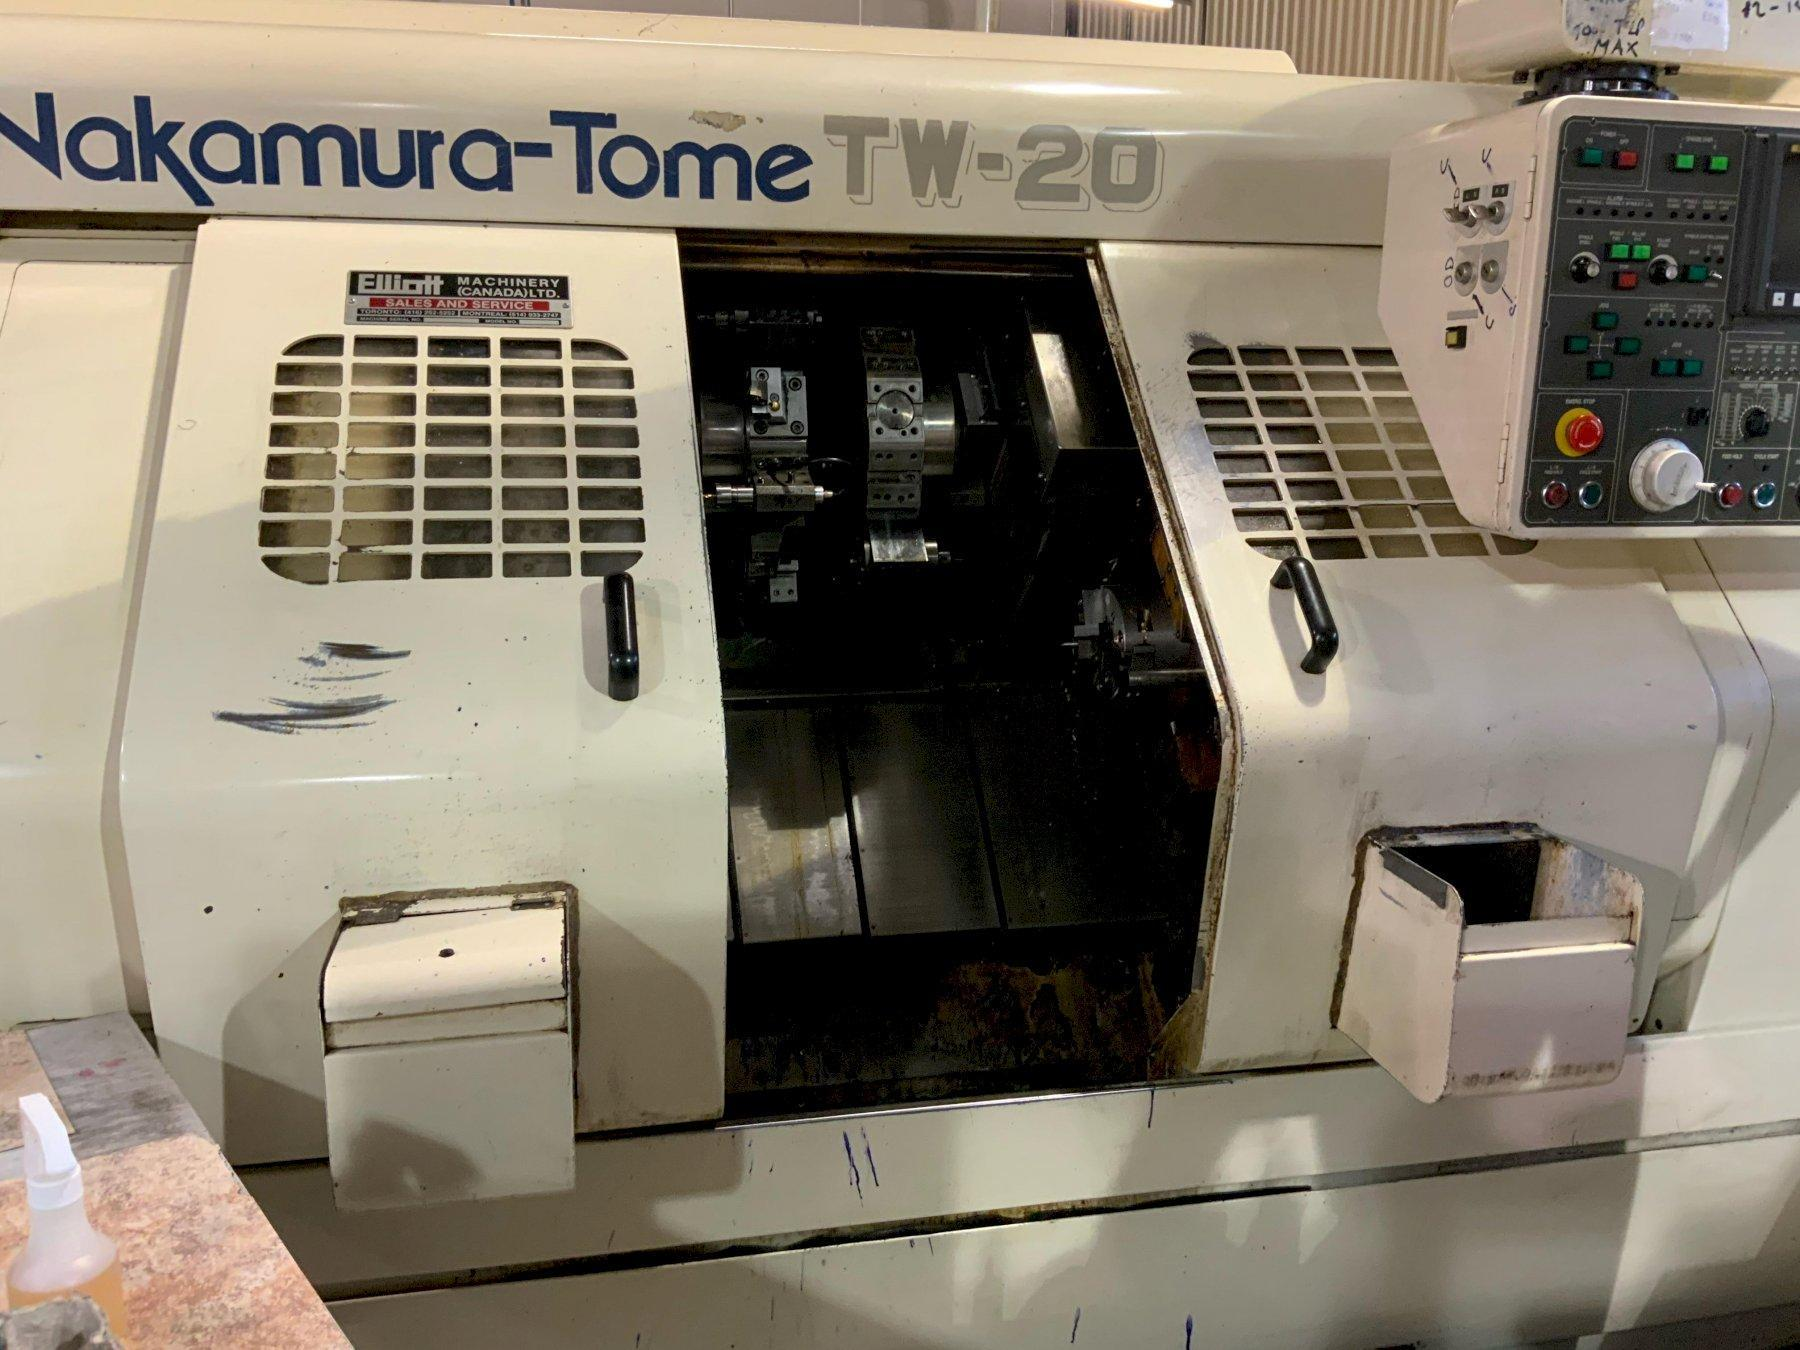 Nakamura-Tome TW-20MM Turning Center, Mfg. 1990